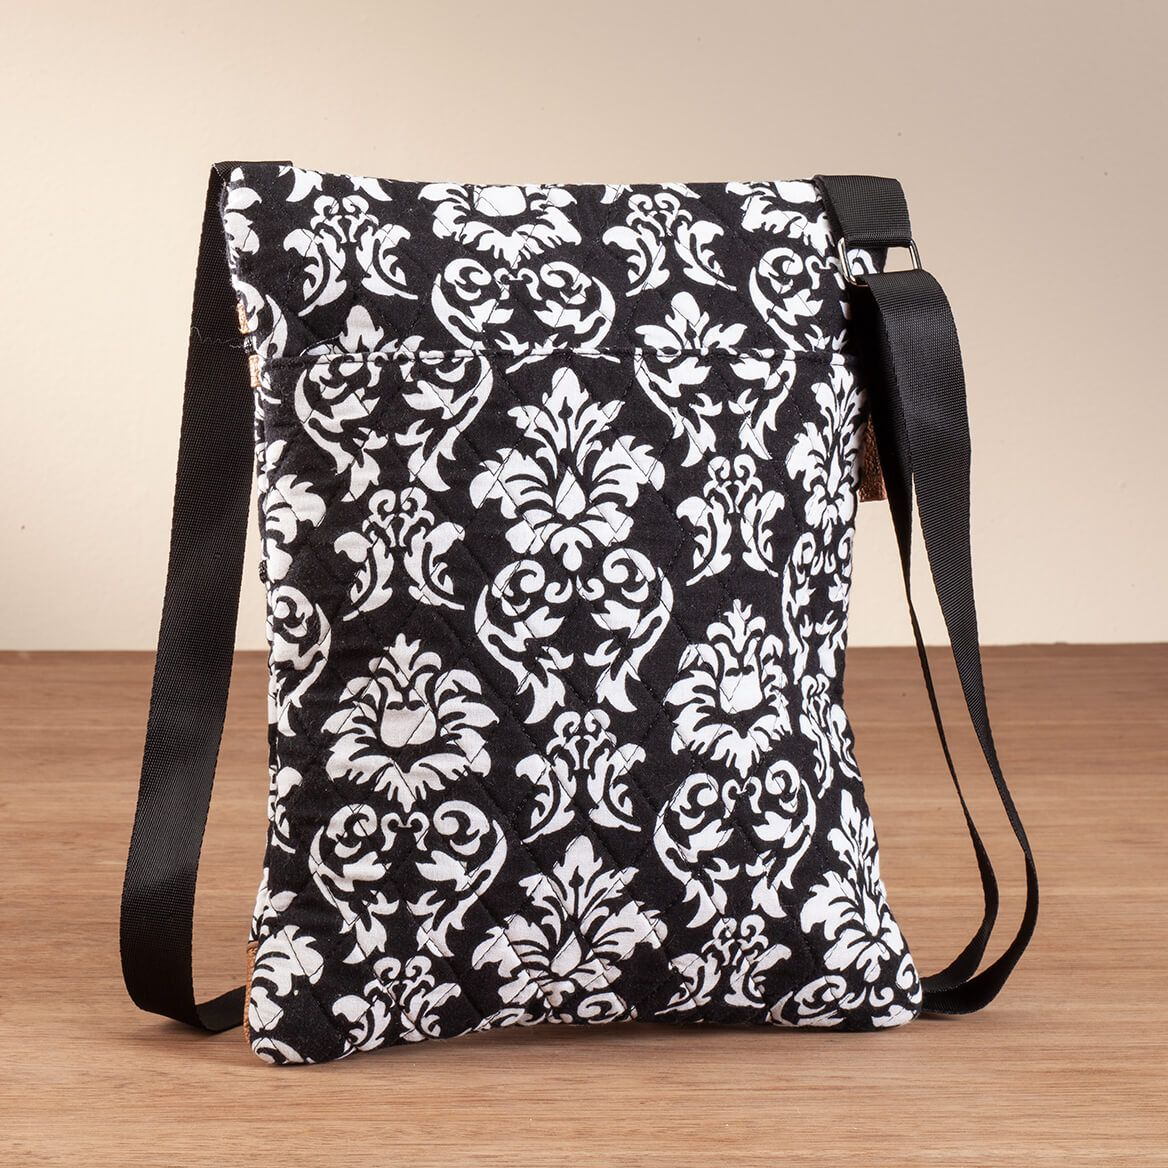 Quilted Black and White Crossbody Bag-367579